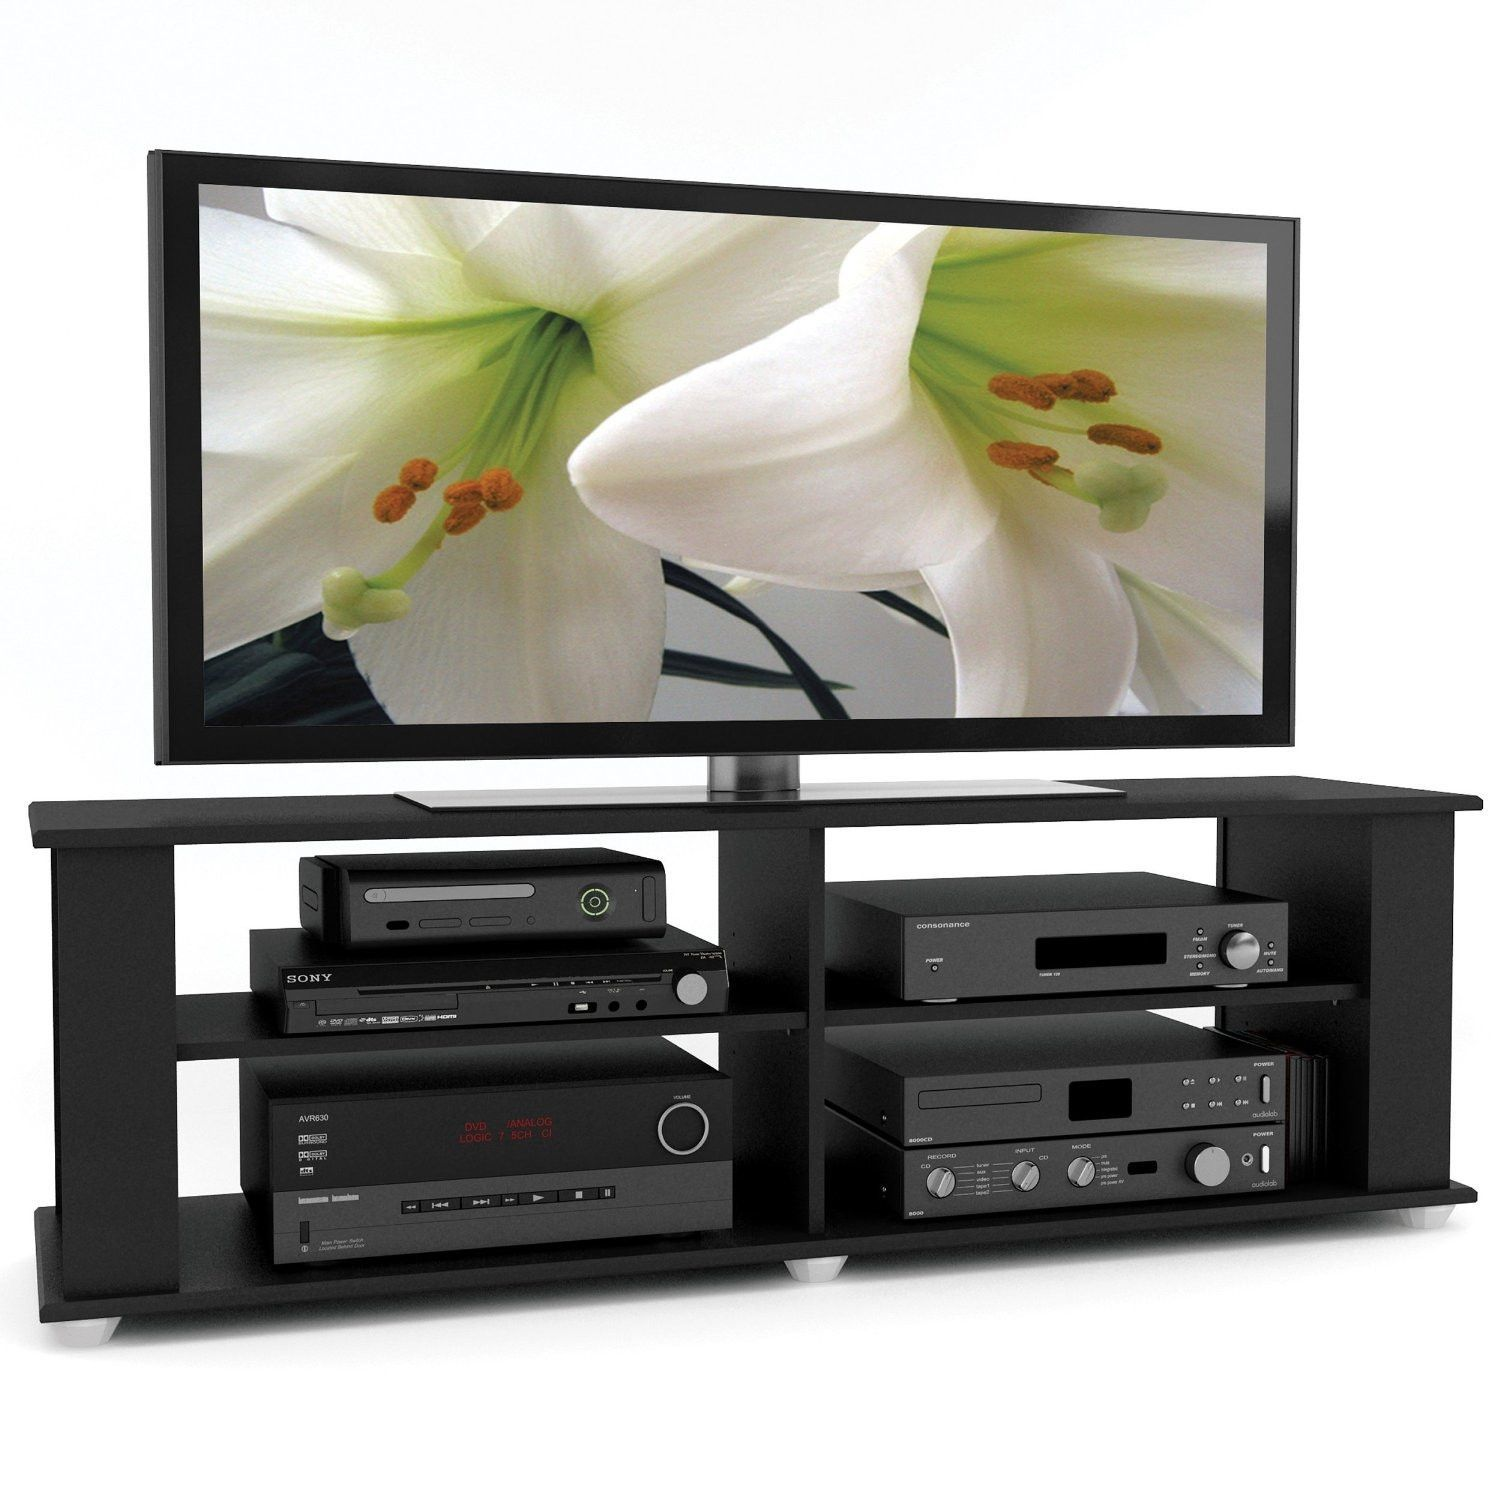 Tv Stand Black Modern Black Tv Stand Fits Up To 68 Inch Tv Black Tv Stand